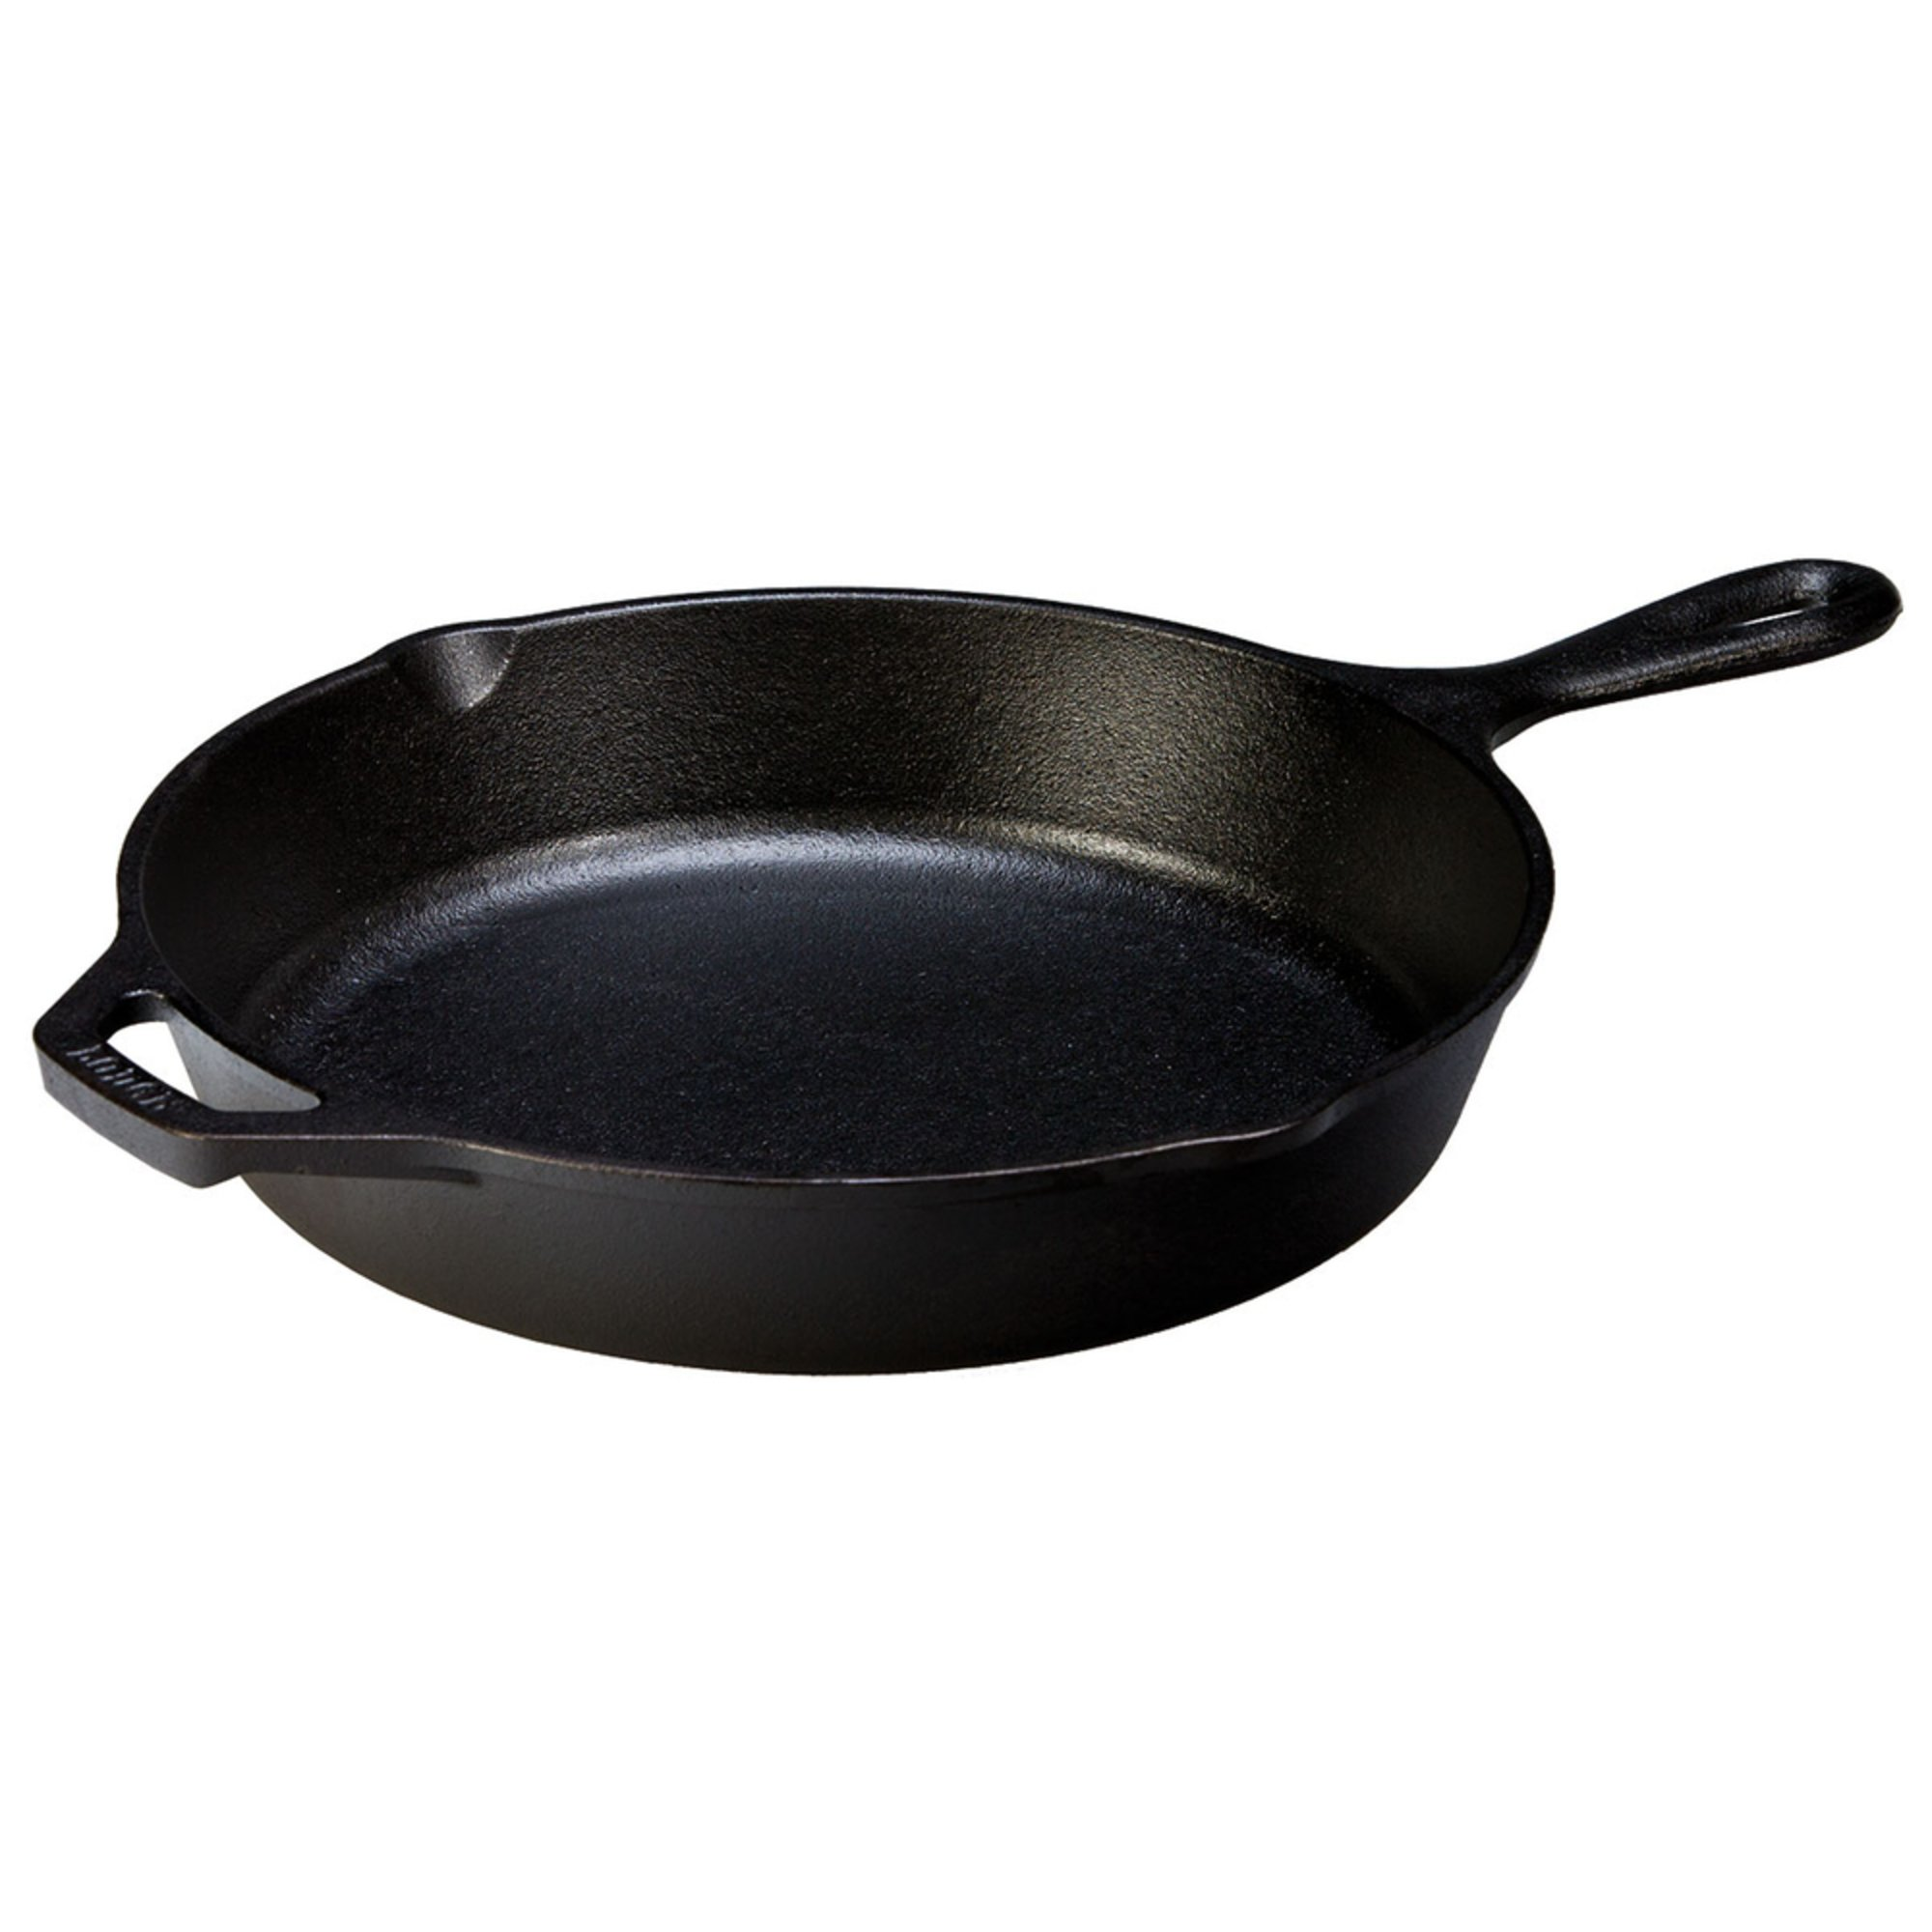 """What Size Cast Iron Skillet: Lodge 10.25"""" Cast Iron Skillet"""